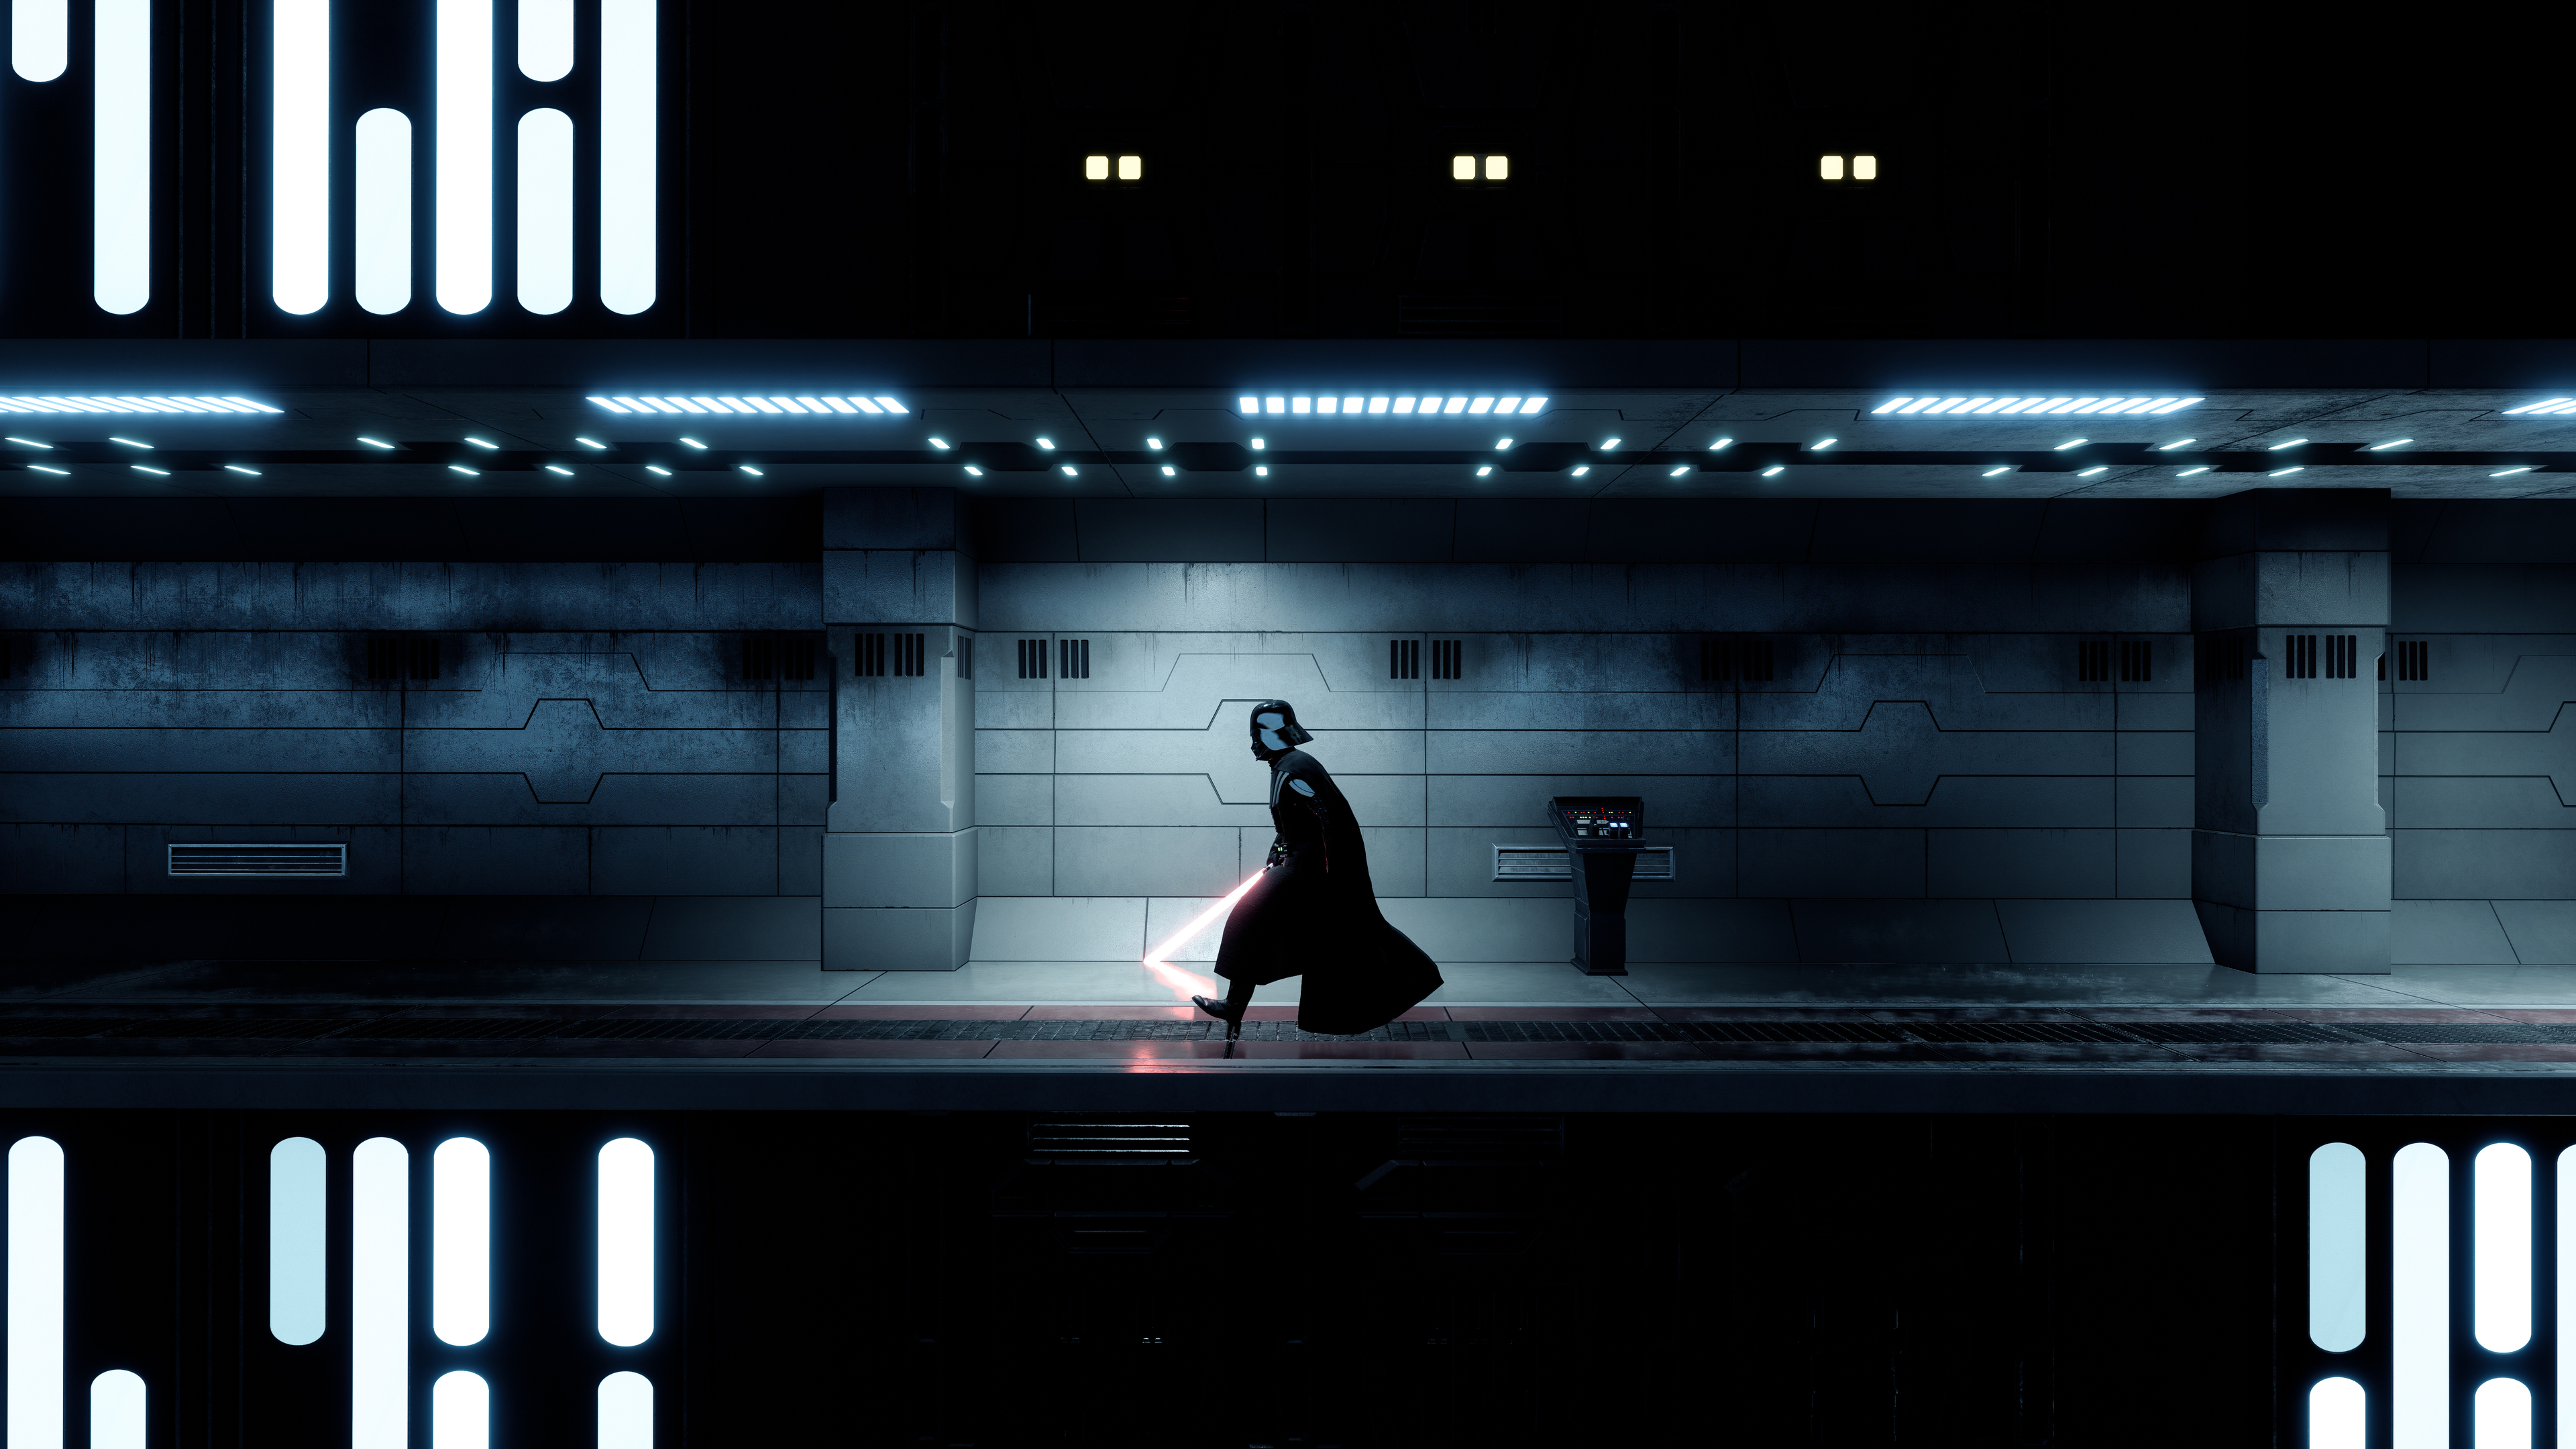 3840x2160 Darth Vader 8k 4k Hd 4k Wallpapers Images Backgrounds